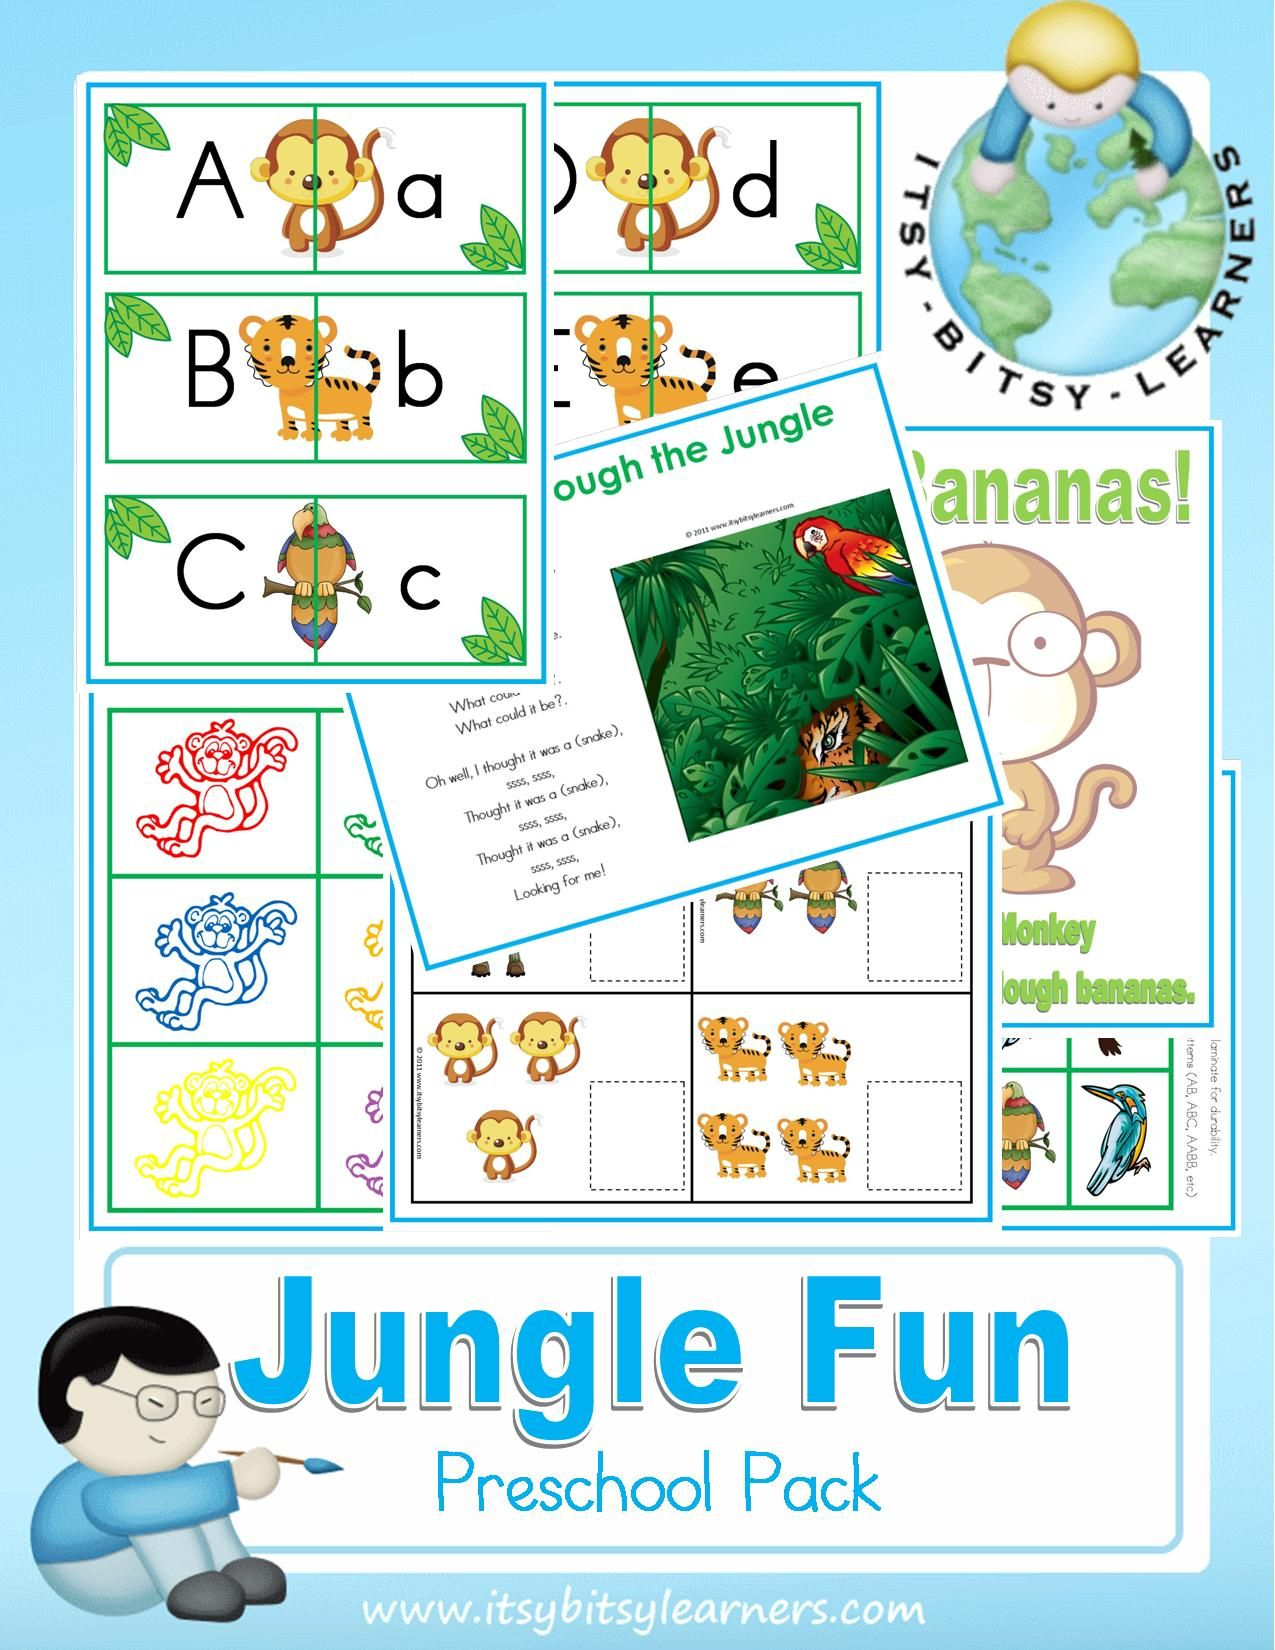 Free Preschool Kindergarten Printable Packs Including Cut